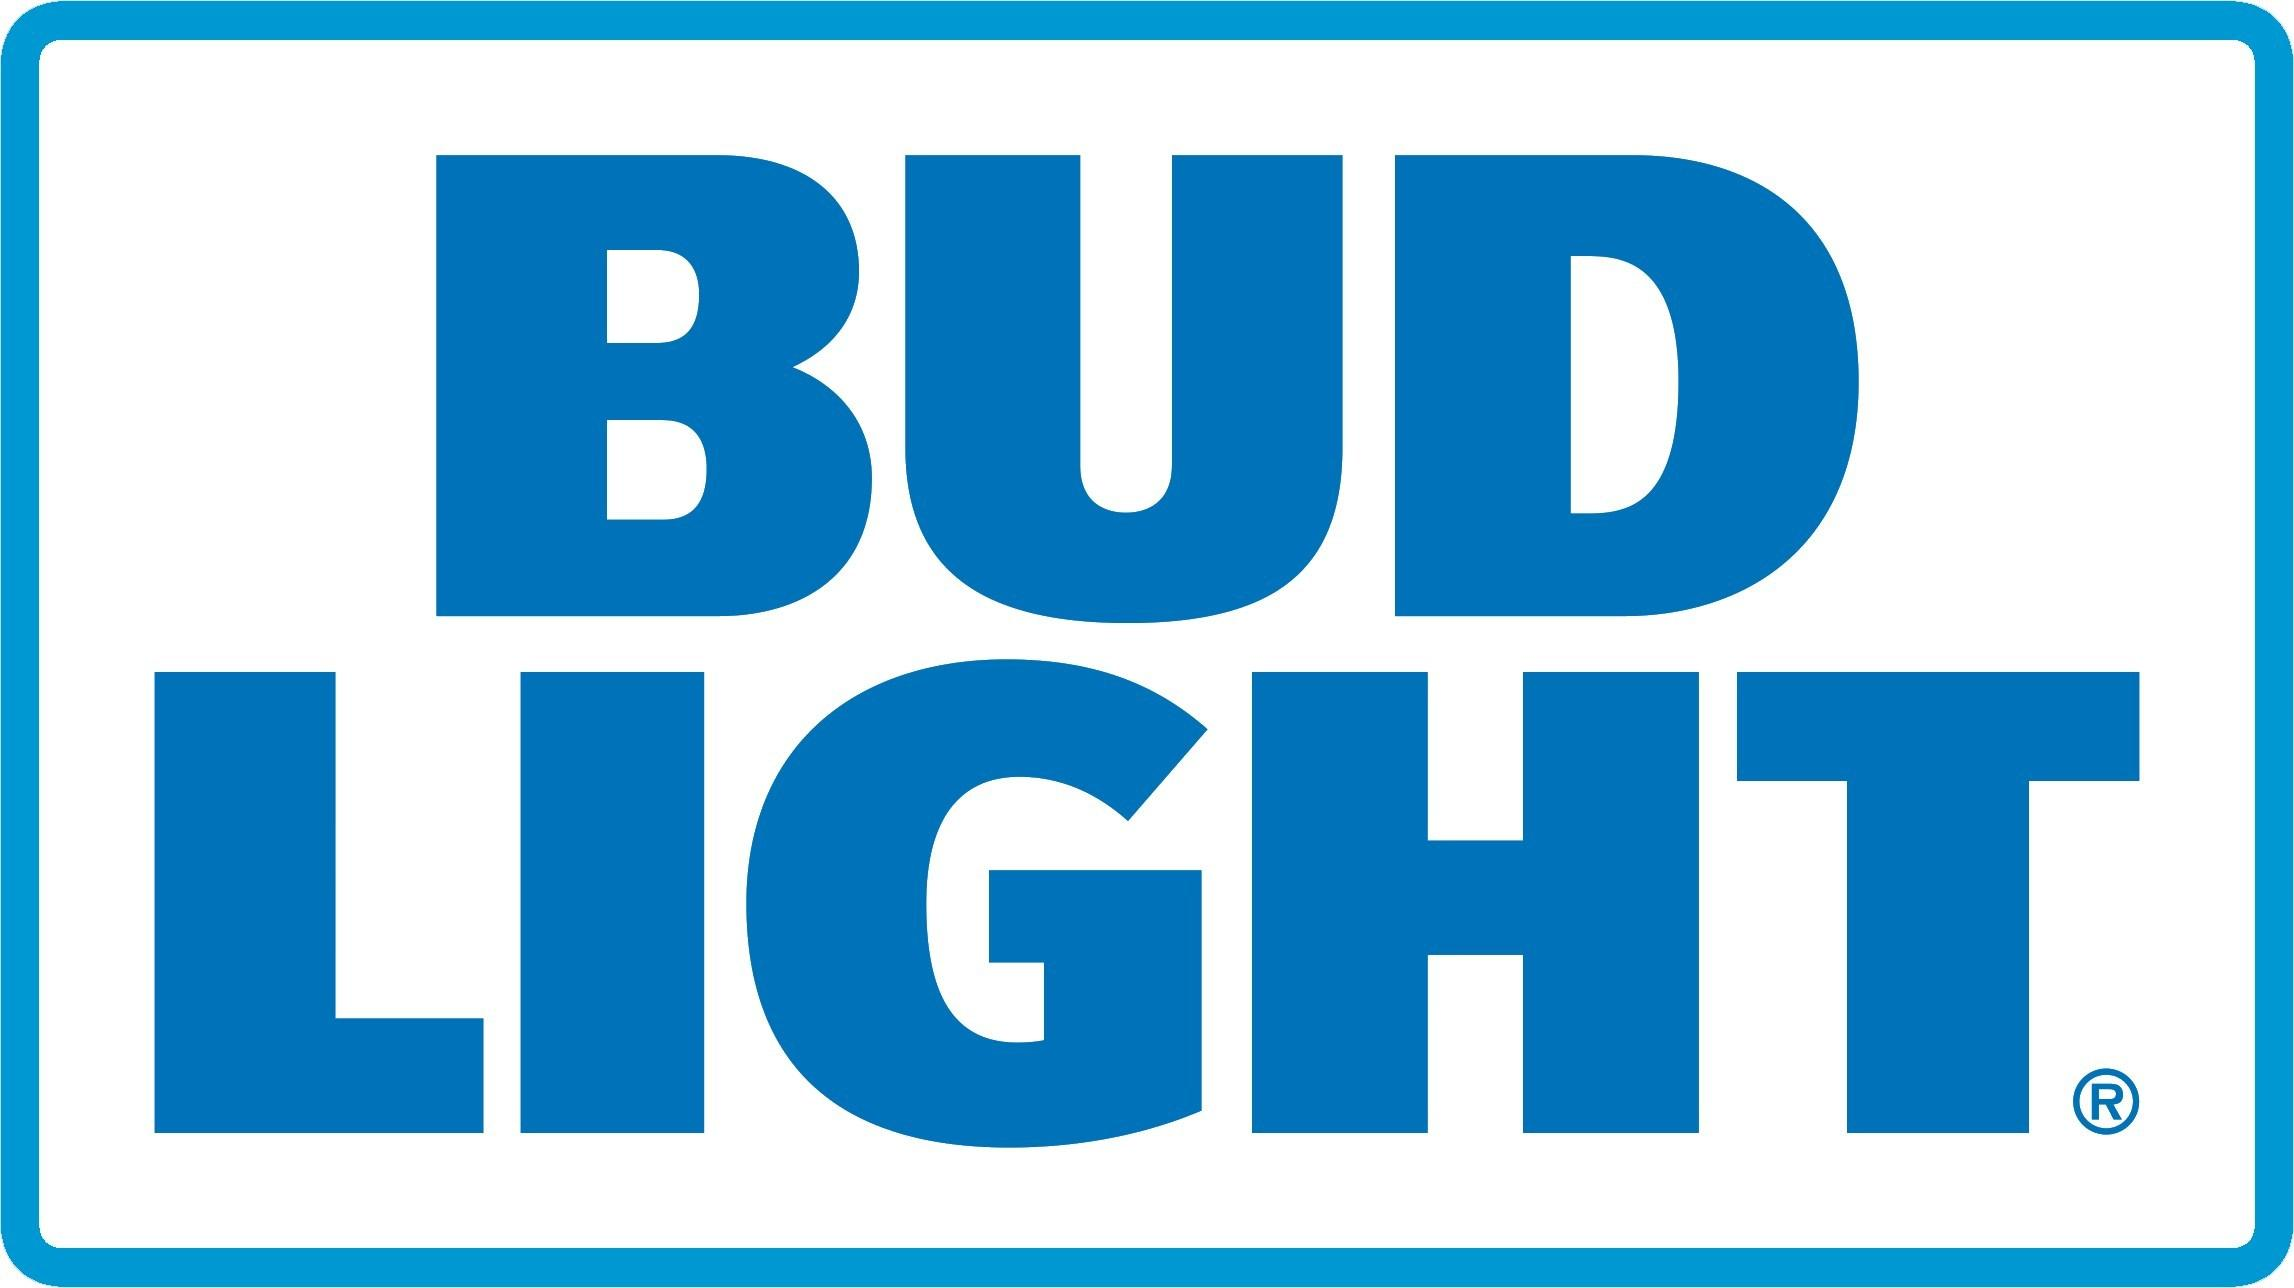 bud light soft cooler bluetooth speaker travel. Black Bedroom Furniture Sets. Home Design Ideas